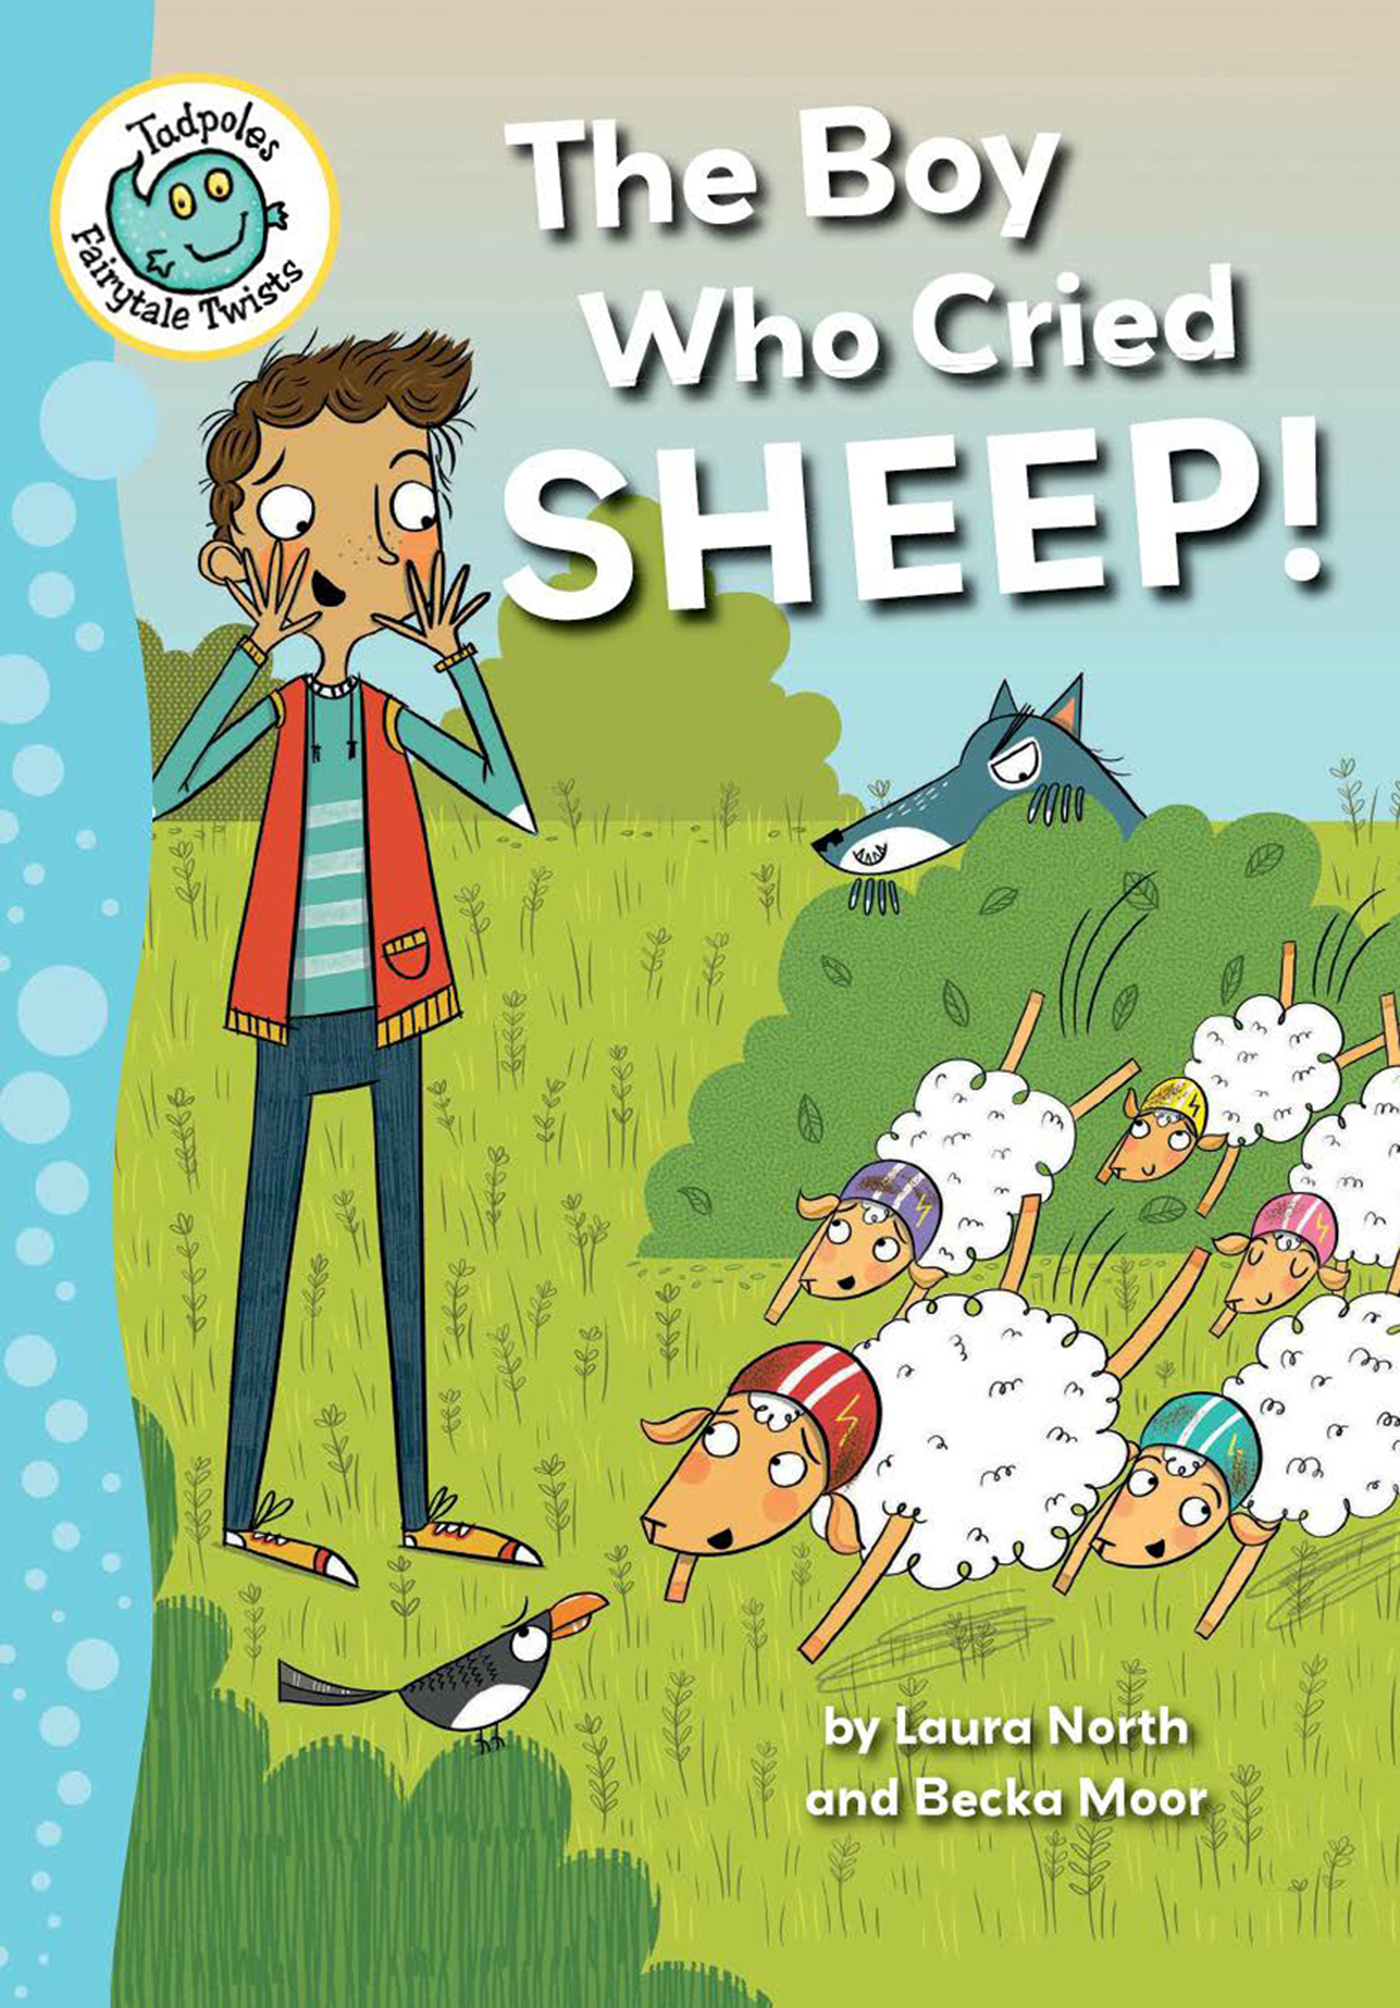 The Boy Who Cried Sheep!